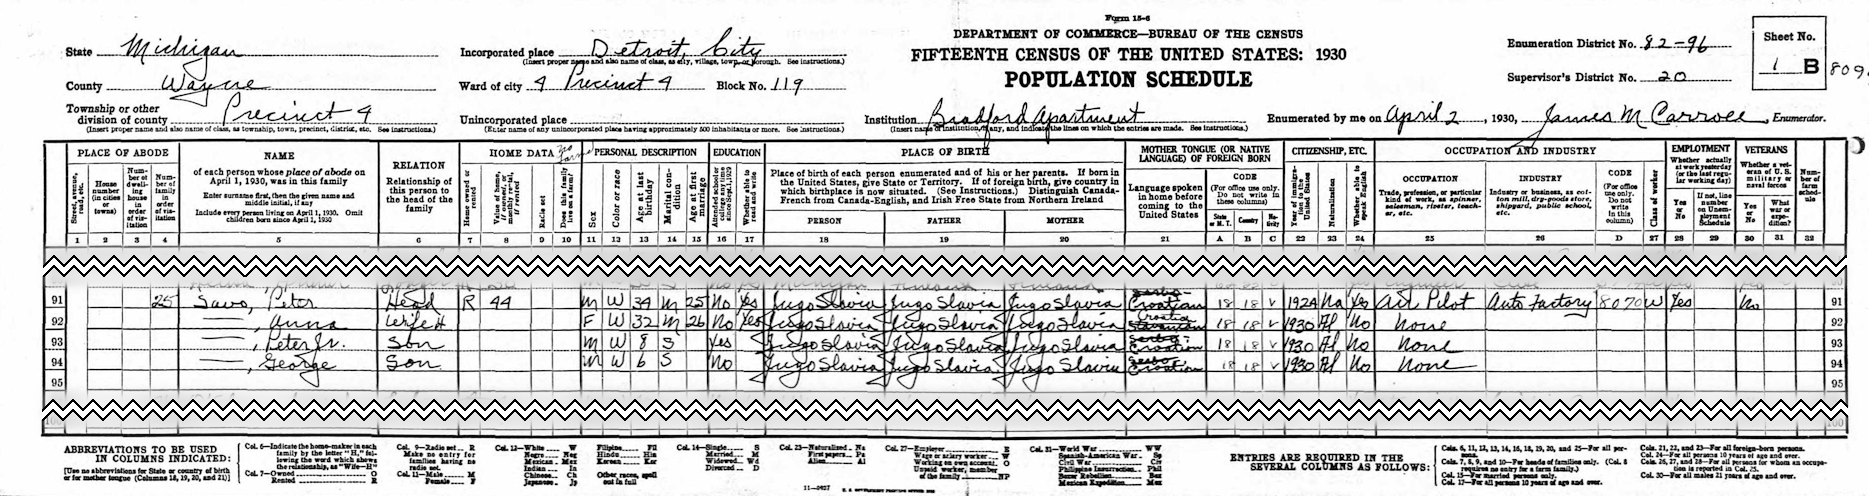 Peter_Savo_Census_1930_X.png